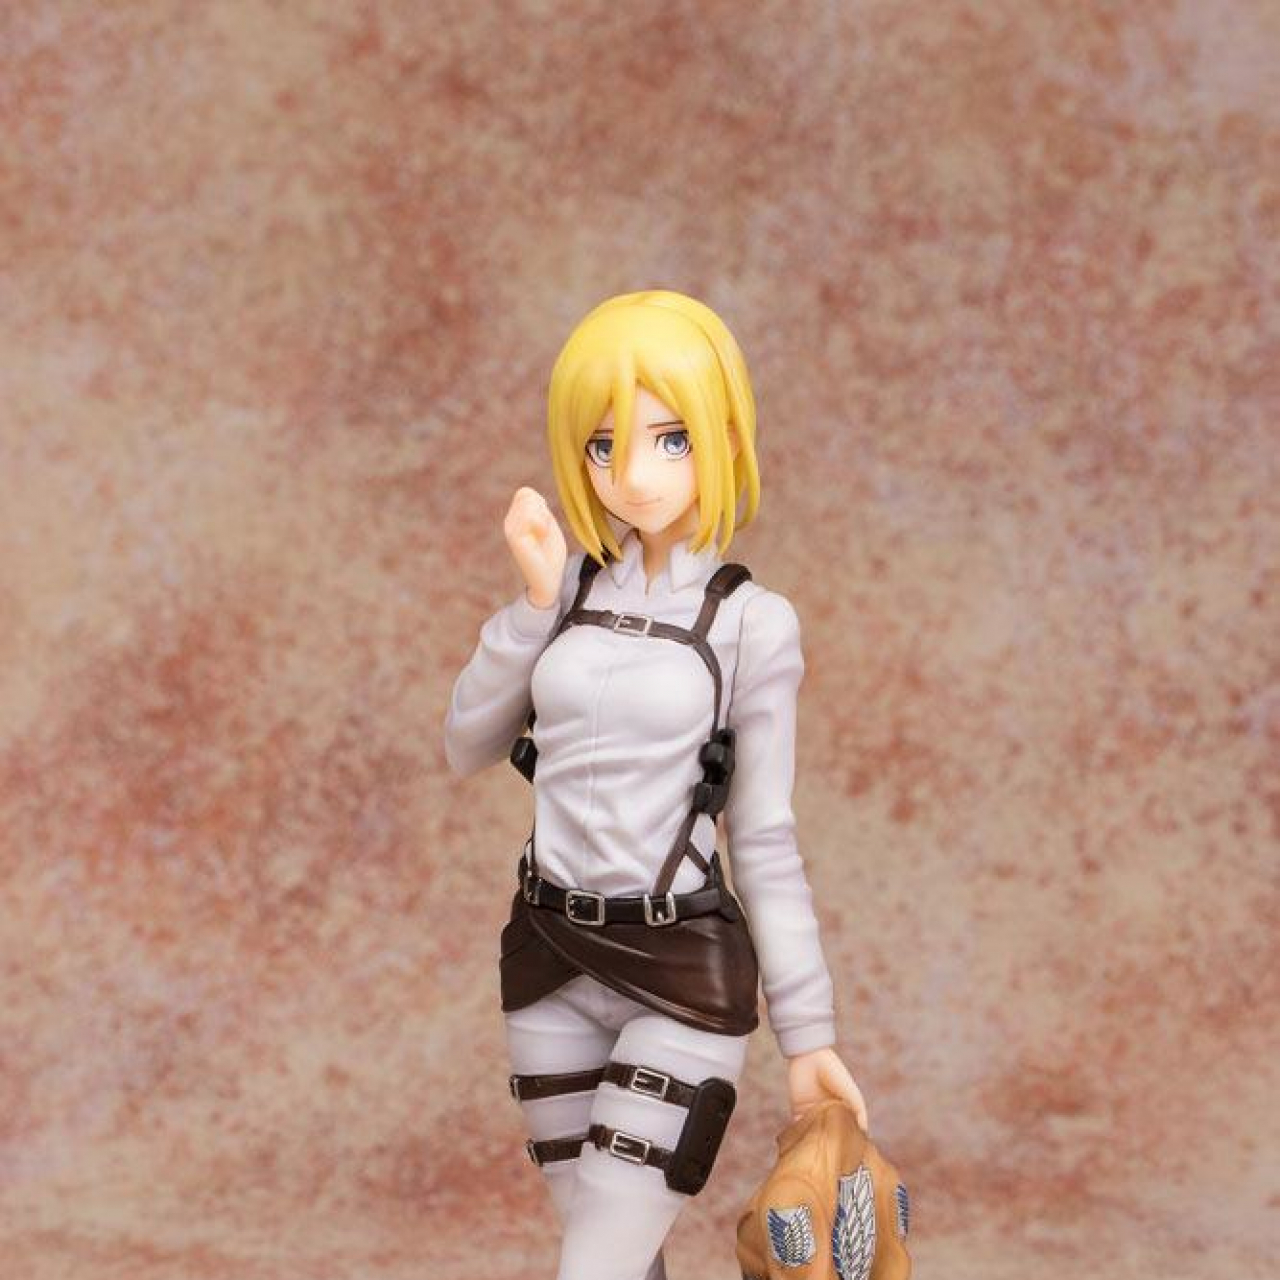 Attack on Titan: Krista Lens (21cm, 1/8 scale)